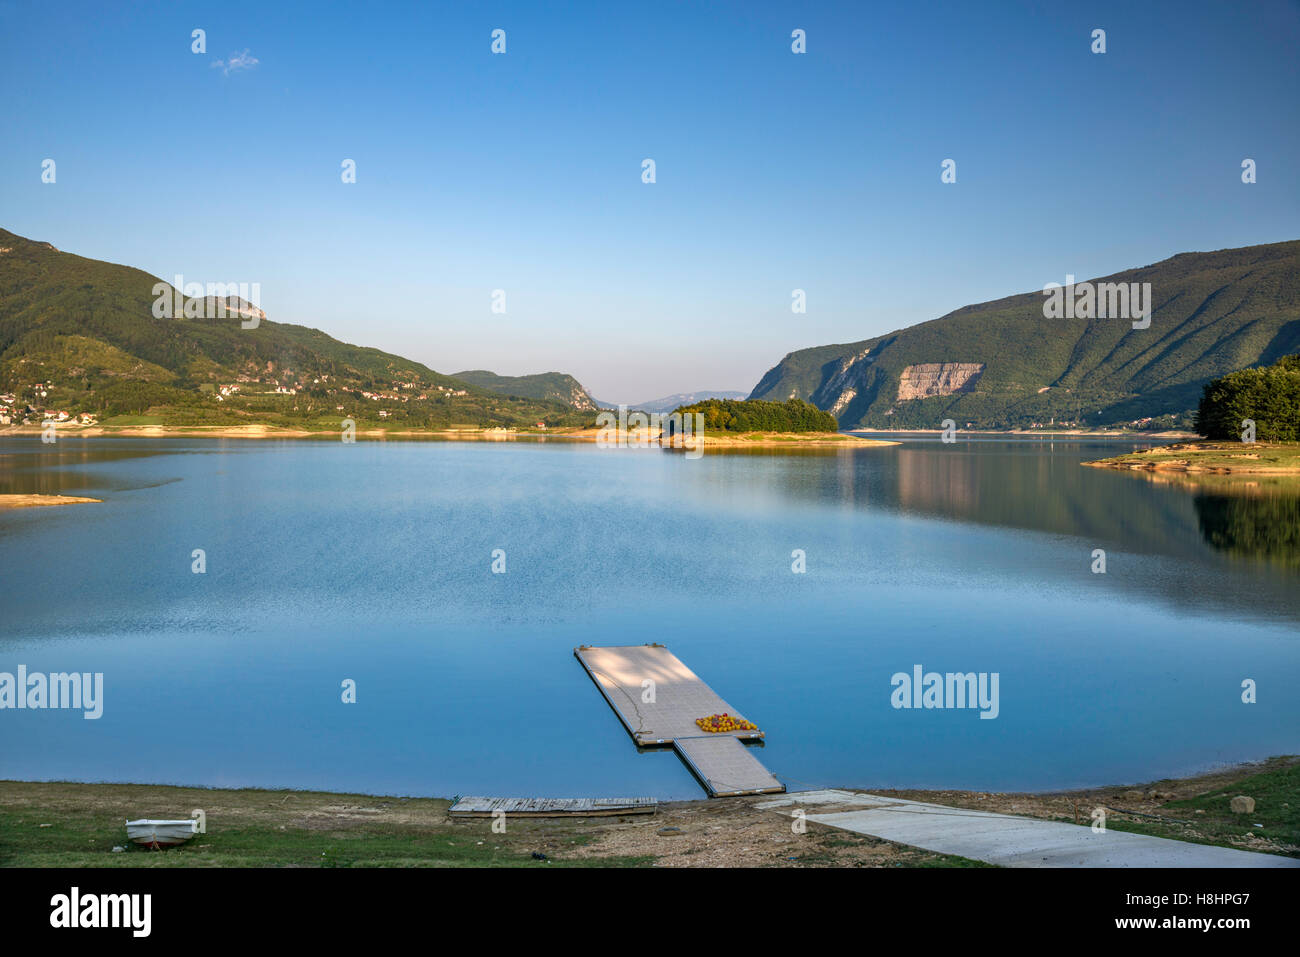 Ramsko jezero (Rama Lake), artificial lake in Rama Valley, Dinaric Alps, Bosnia and Herzegovina - Stock Image